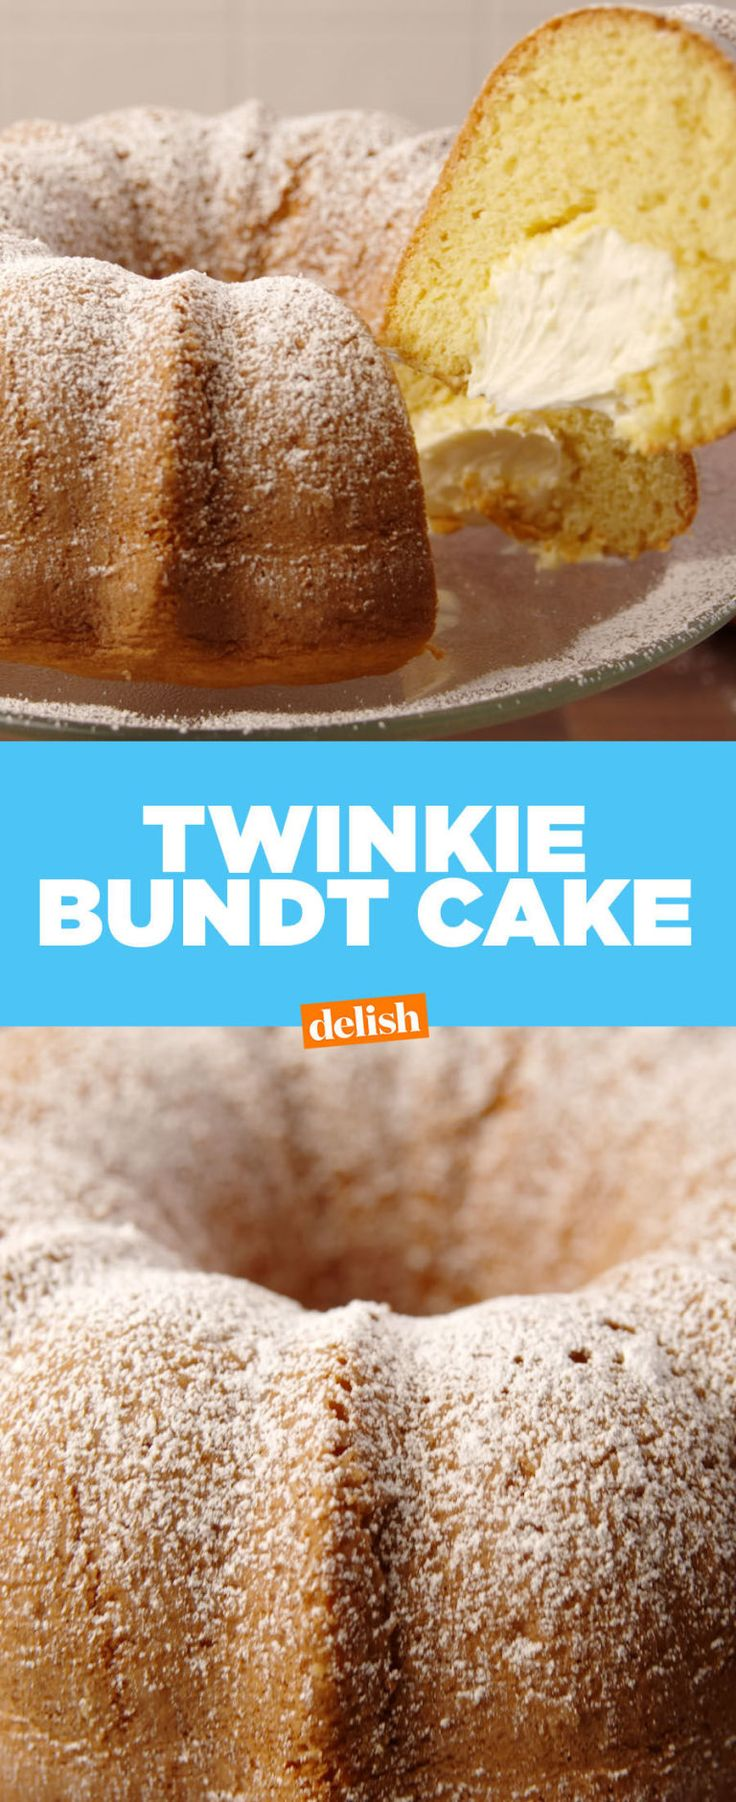 We Turned A Bundt Cake Into A Giant Twinkie And We're FREAKING Out